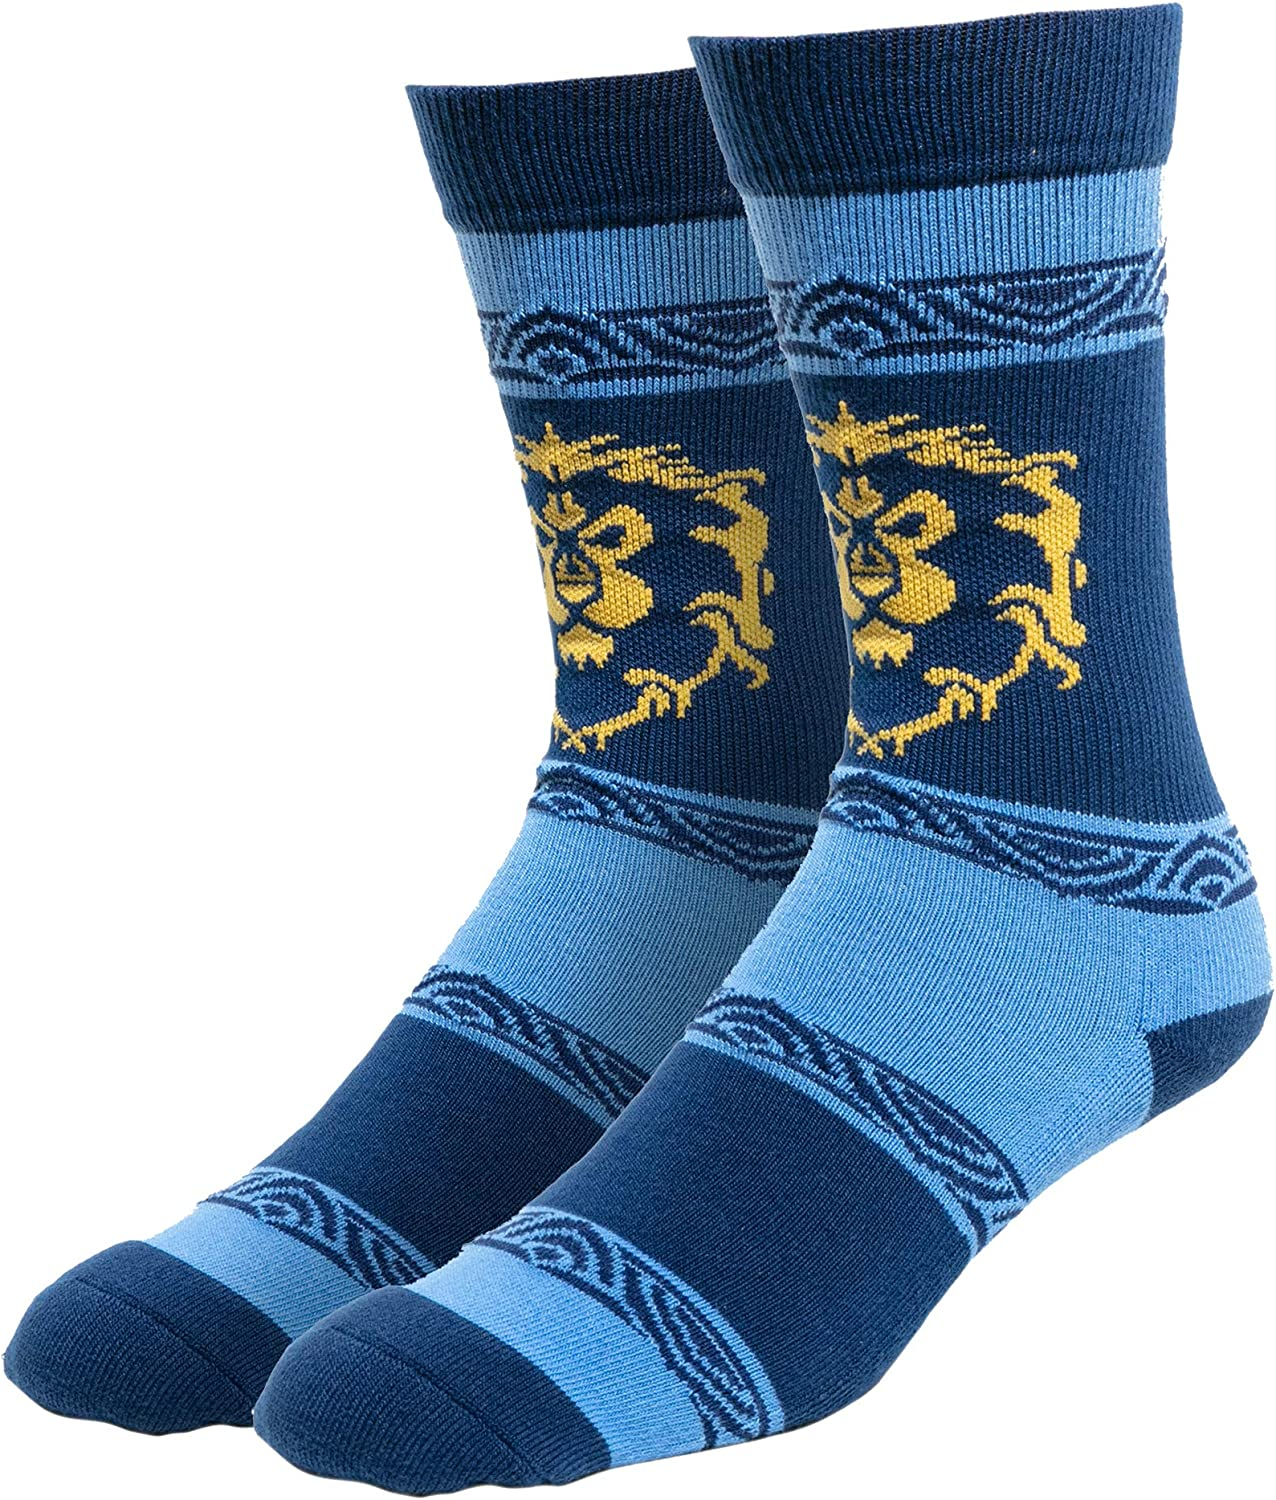 JINX World of Warcraft Casual Alliance Embroidered Athletic Crew Socks, 1 Pair